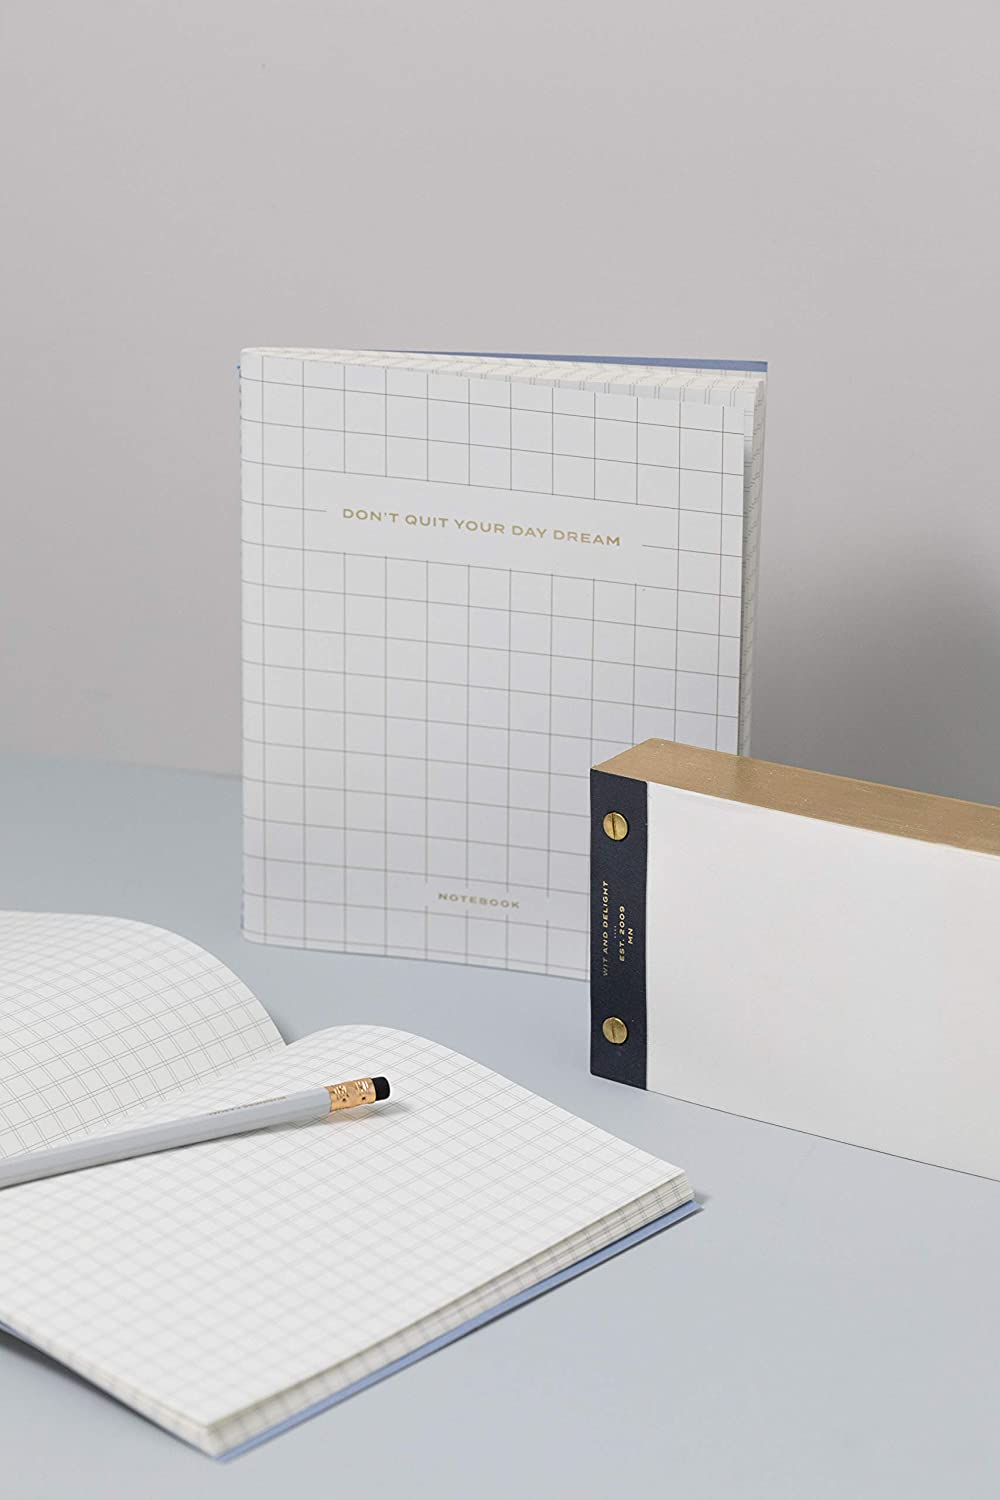 Dont Quit Your Day Dream Grid Notebook//Journal Wit /& Delight Size 6.5 X 8 100 GSM Quality Paper/| White 40 Gridded Cream Pages